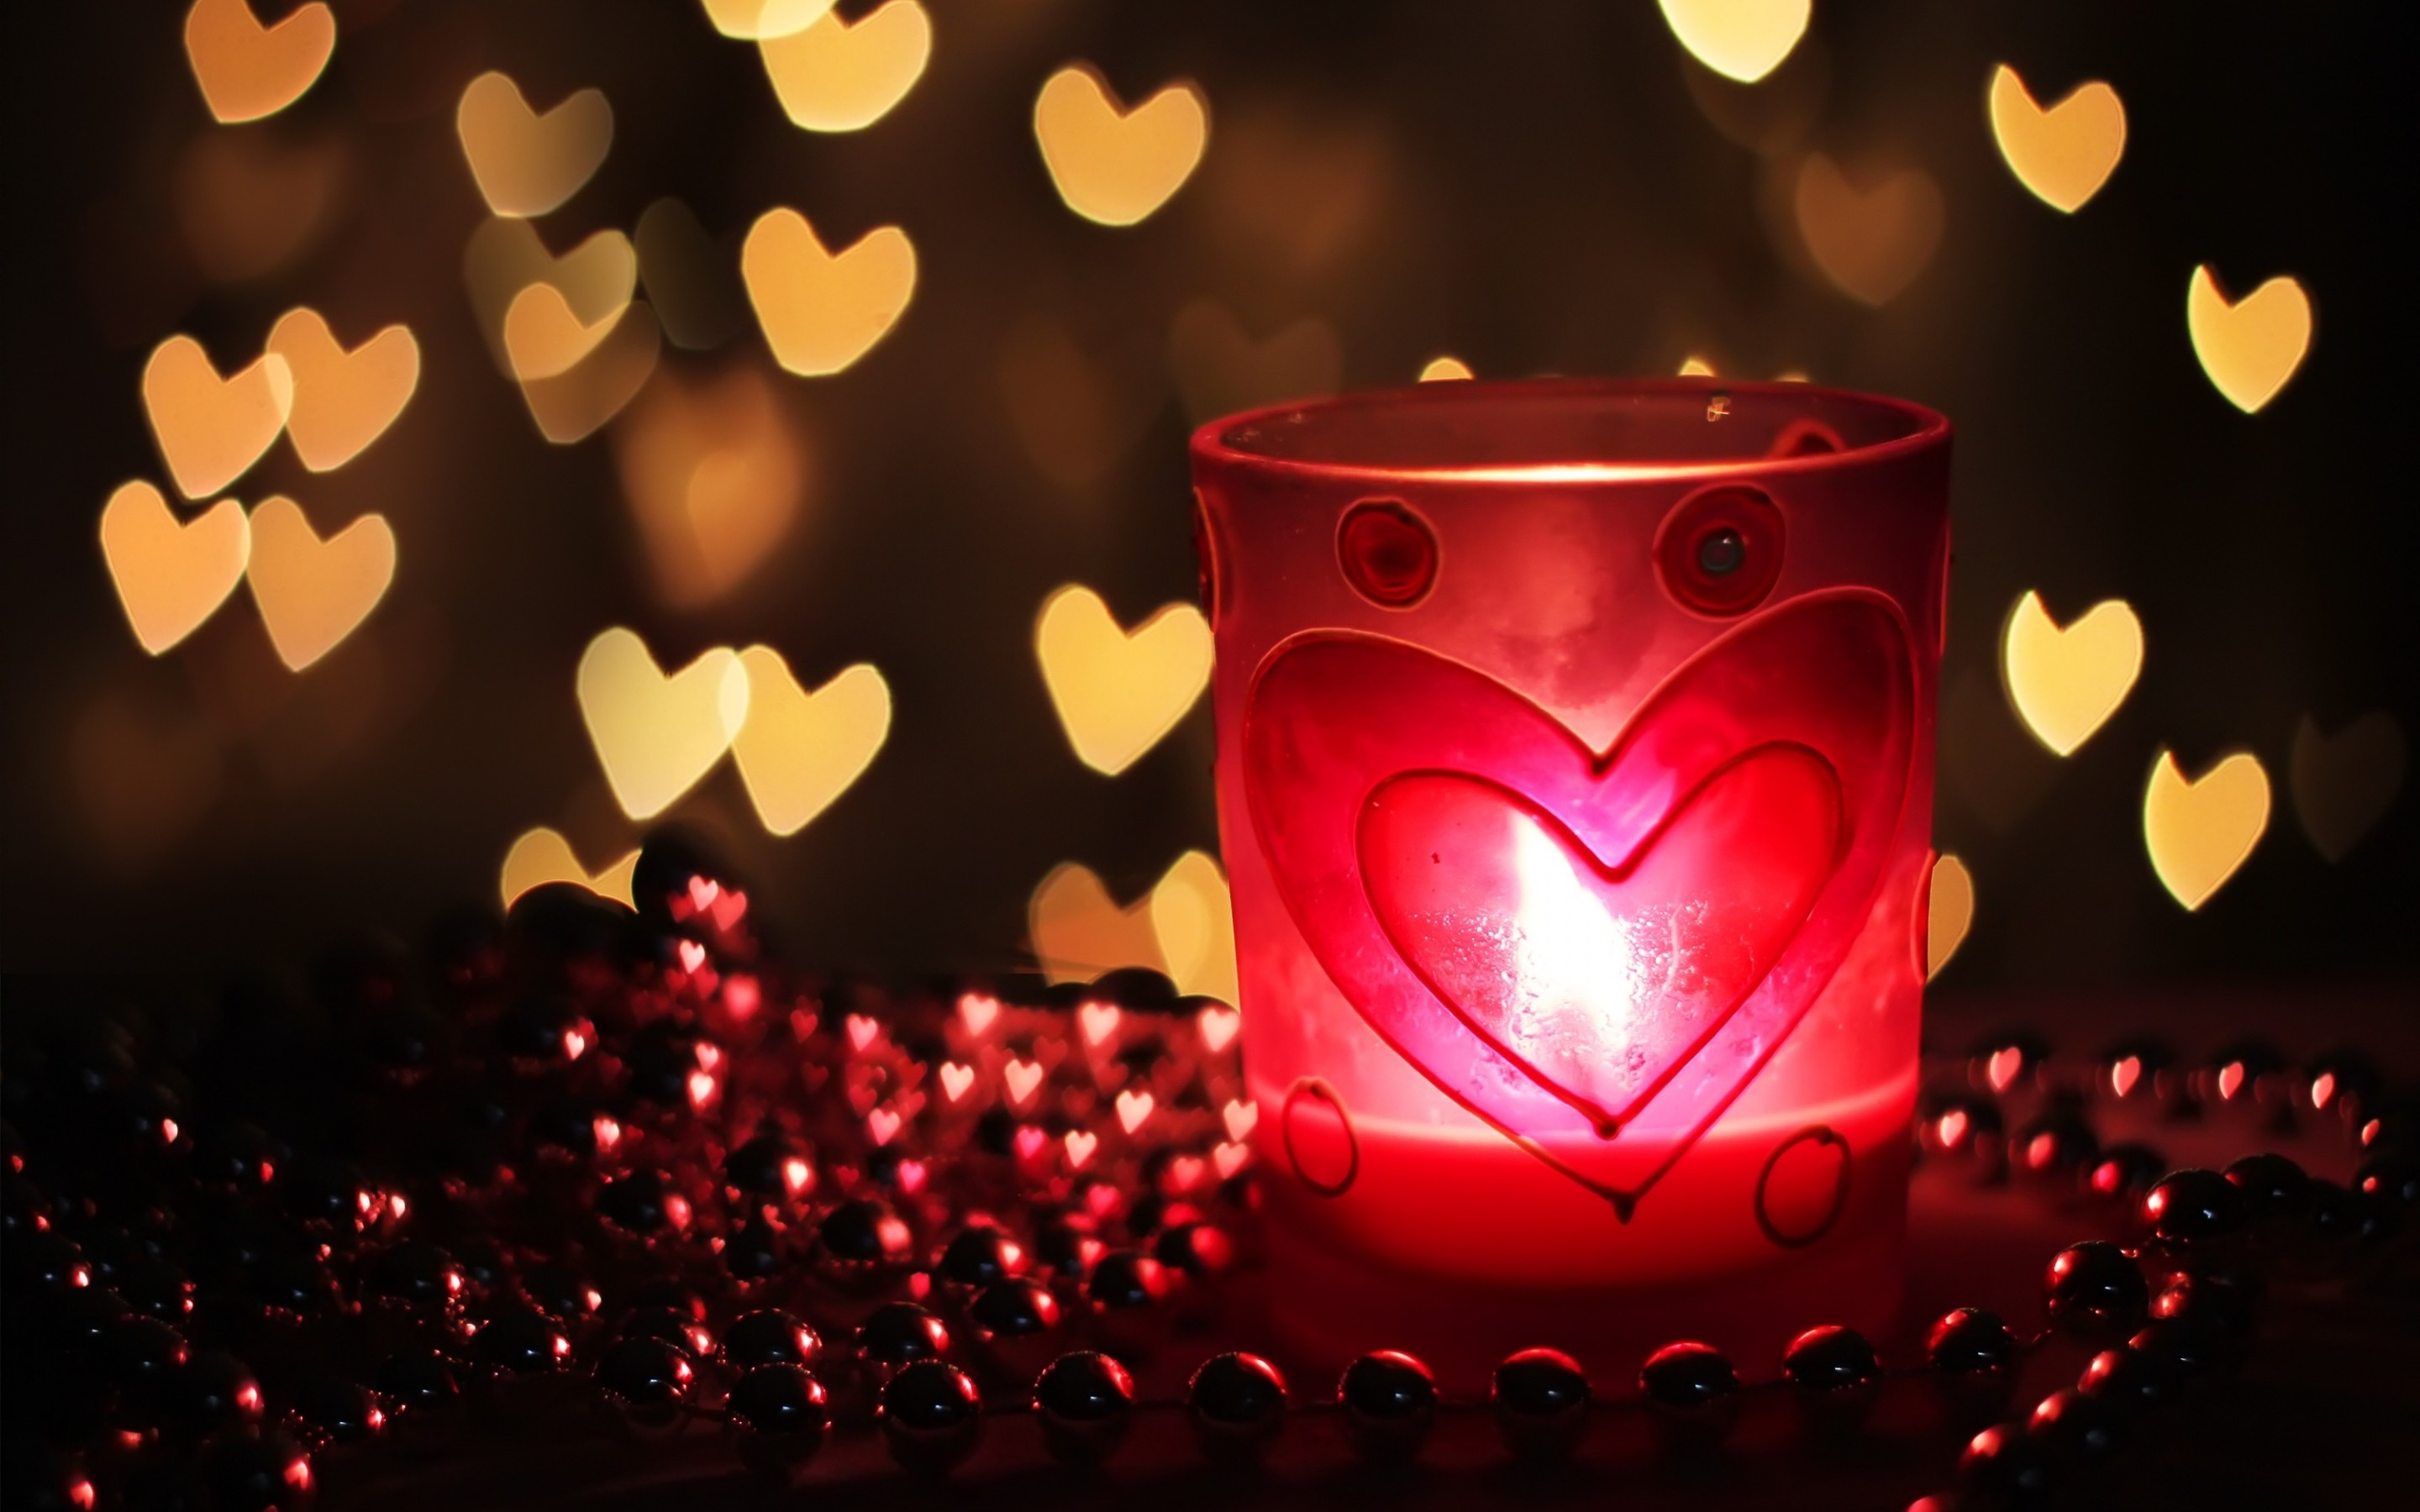 Candle Wallpaper 27